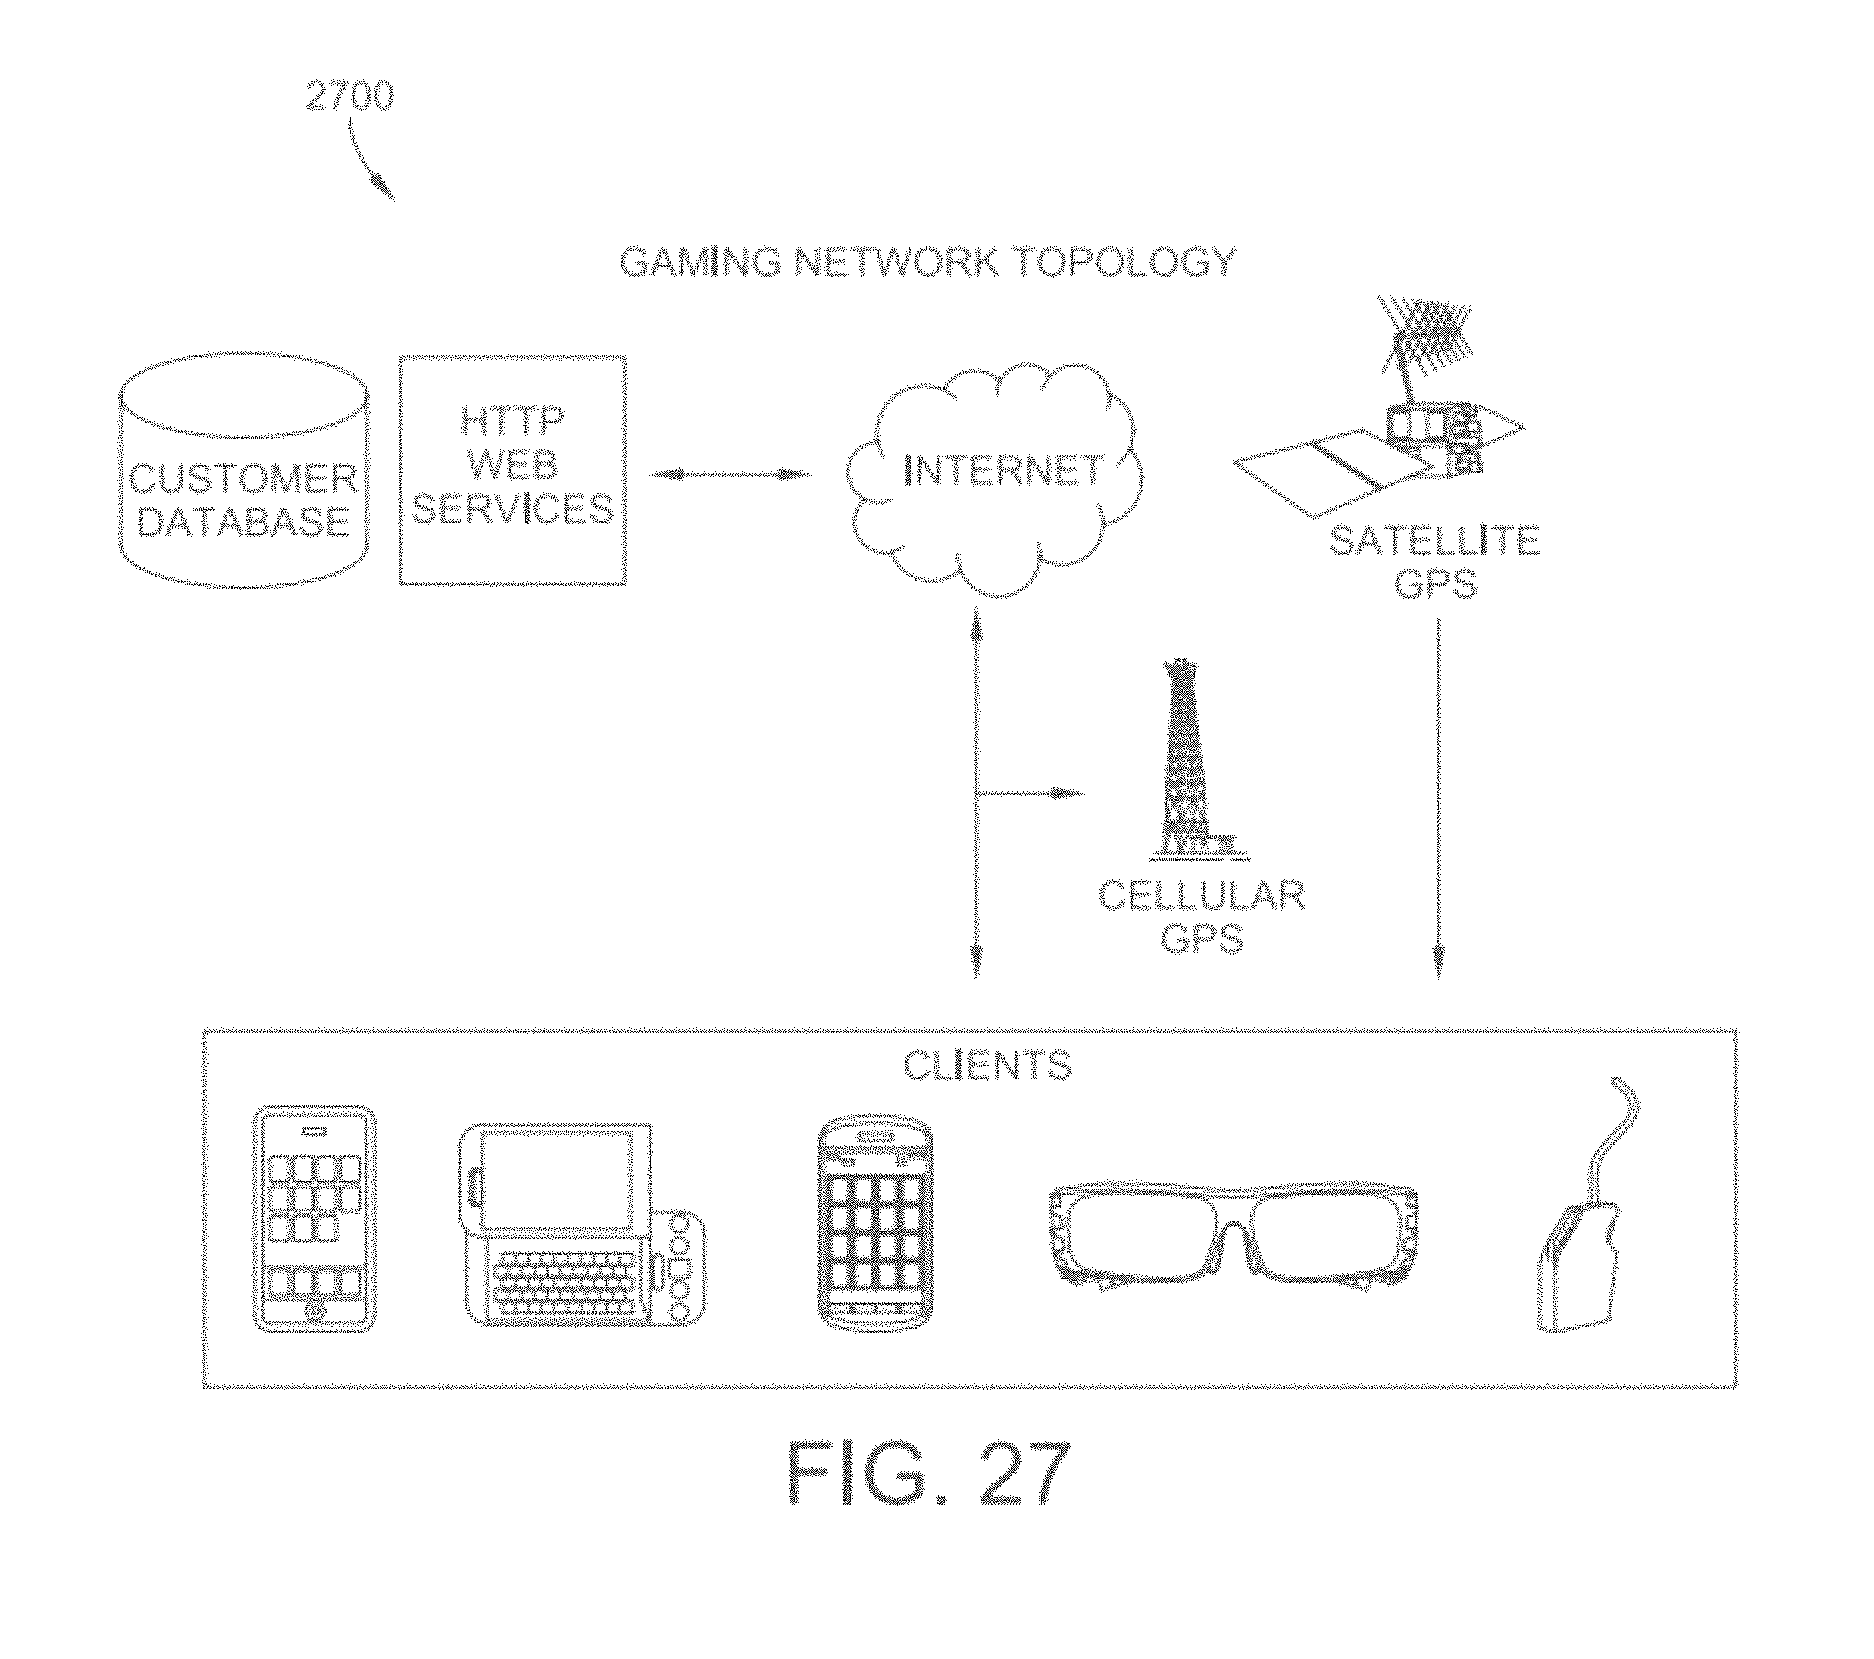 Patent Us 9759917 B2 Topologies Wiring Commercial Grade Images